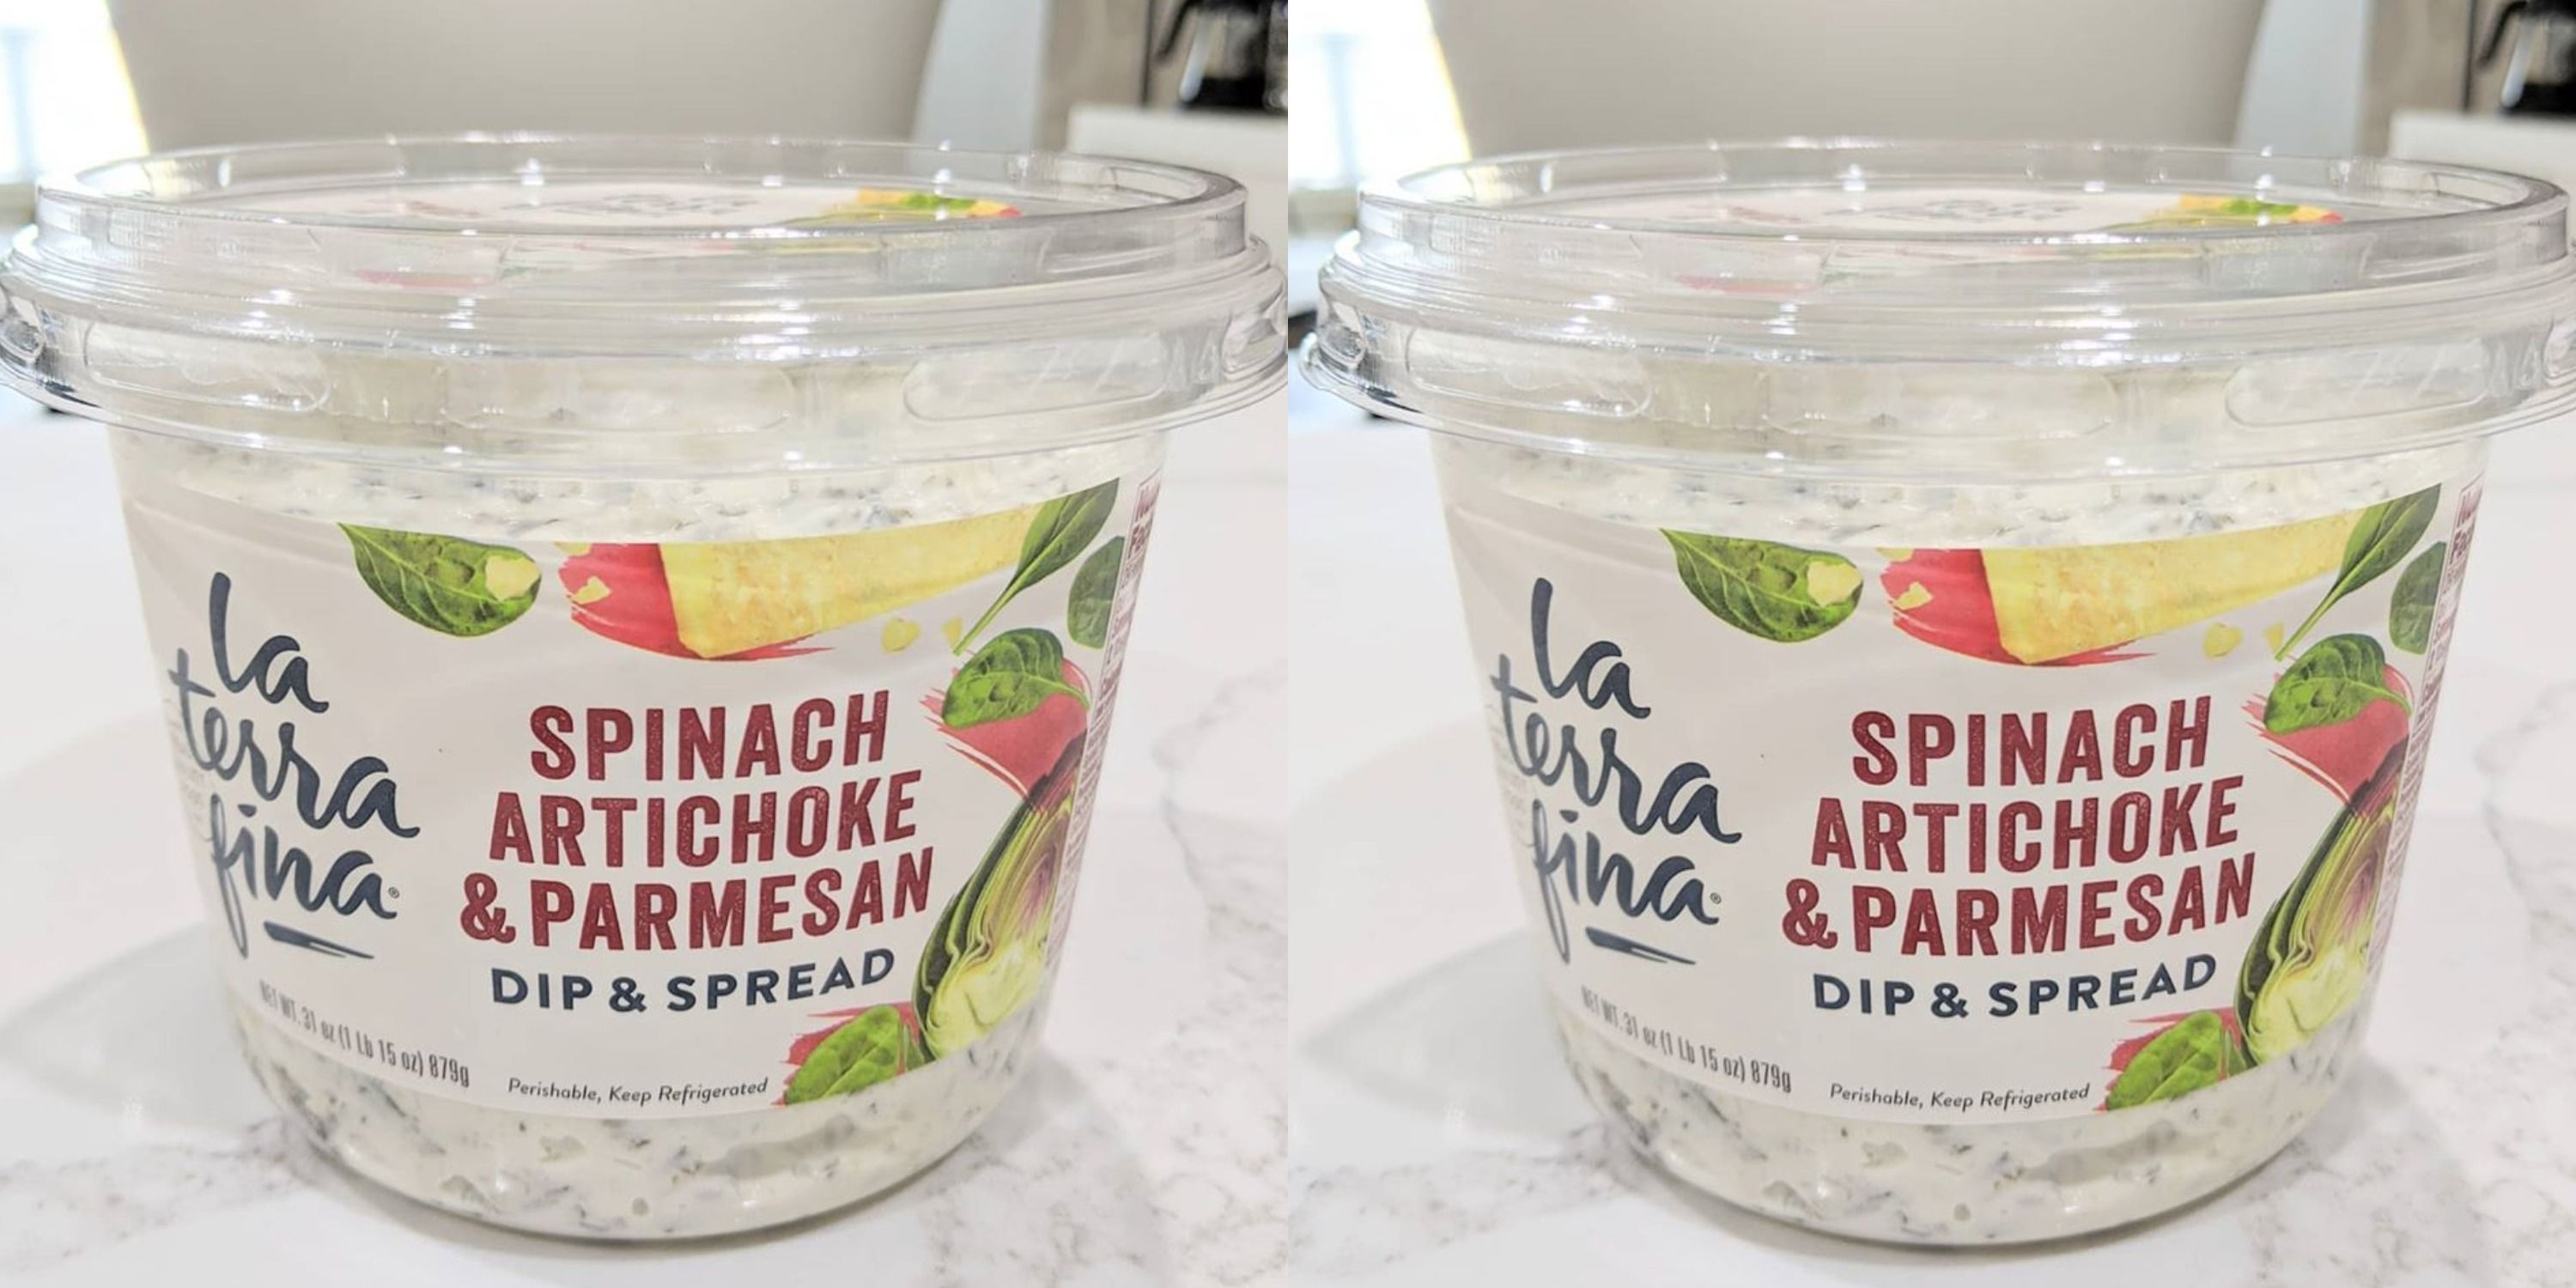 Costco Is Selling A Massive Spinach Artichoke And Parmesan Dip